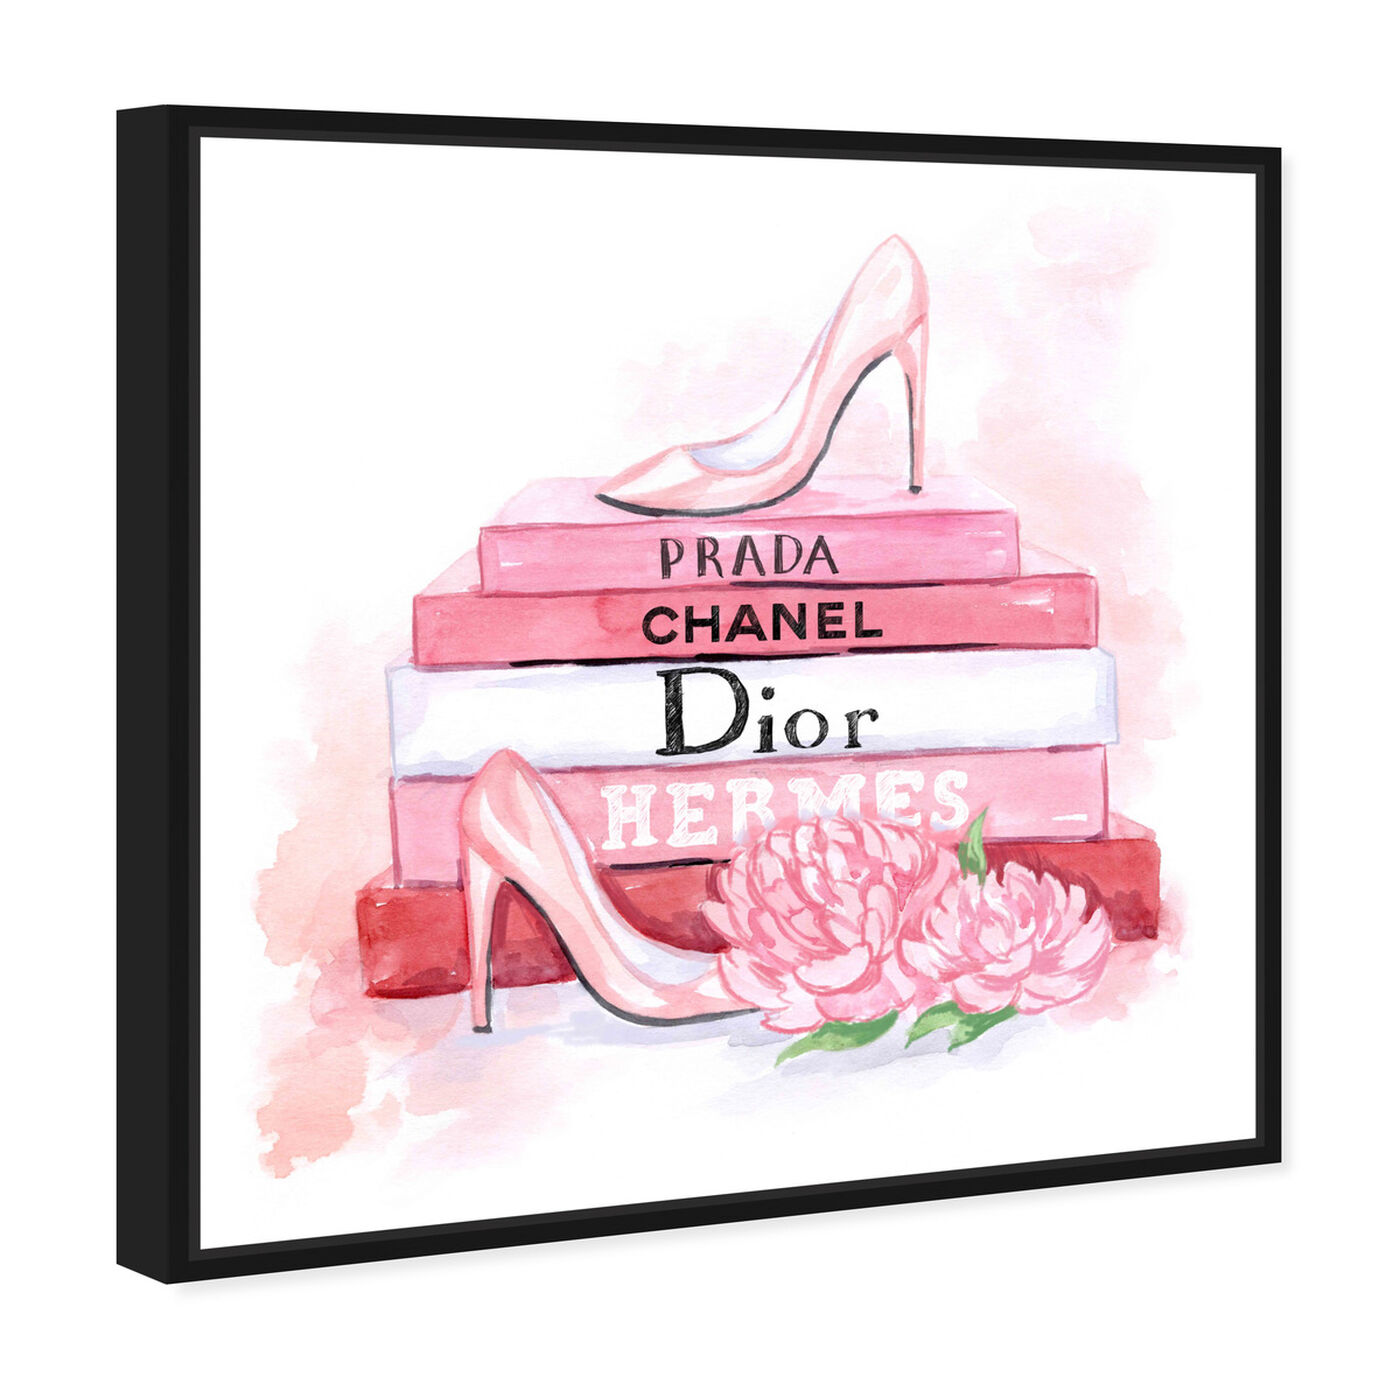 Angled view of fashion pink books featuring fashion and glam and books art.